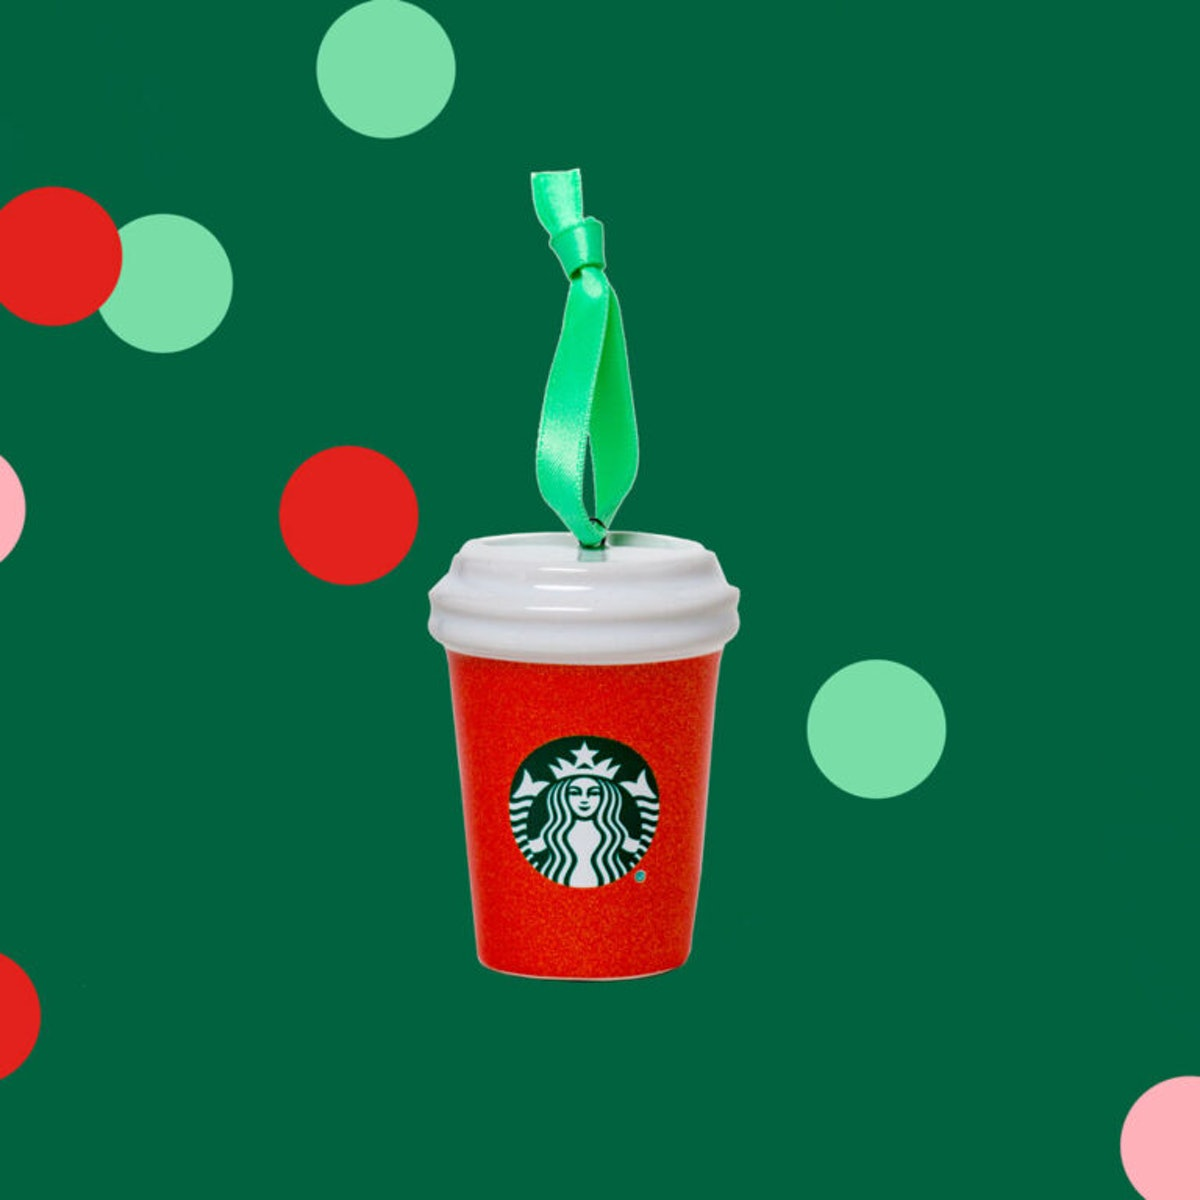 Starbucks' has new holiday merch, including a red cup ornament.